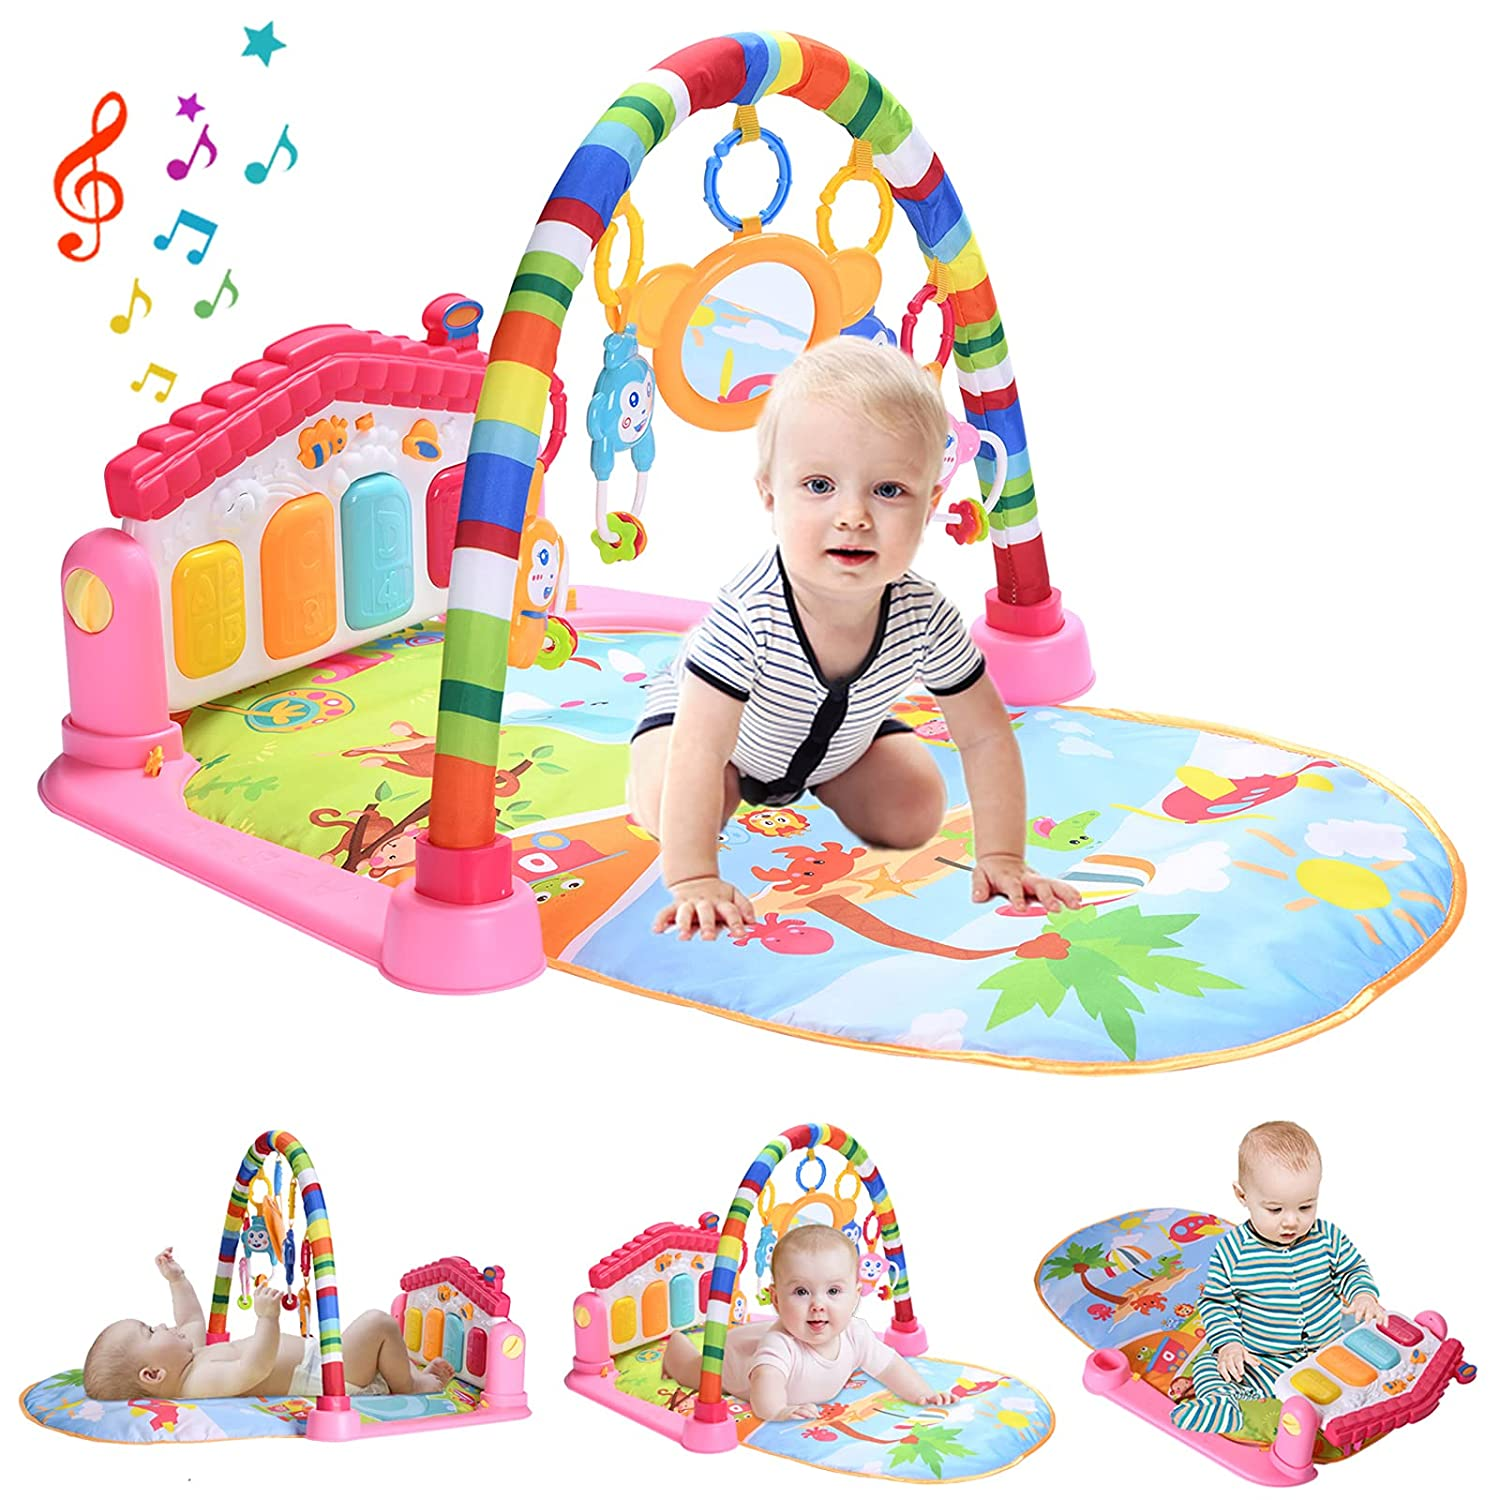 WYSWYG Baby Play Mat for Floor, Baby Play Gym Activity Mat Kick and Play Piano Gym Activity Center for Baby with Music and Lights (Pink)